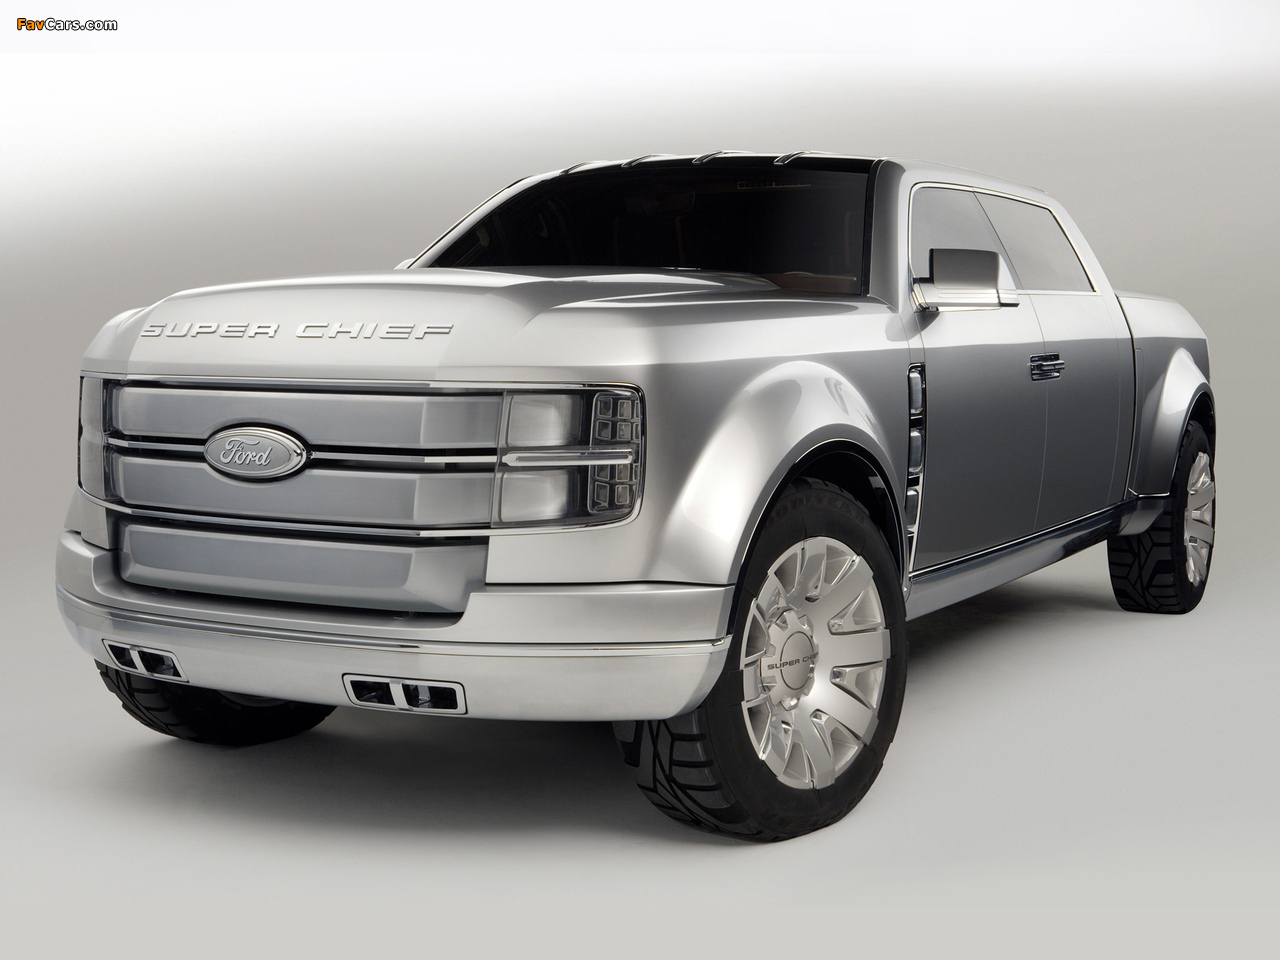 Ford F-250 Super Chief Concept 2006 images (1280 x 960)